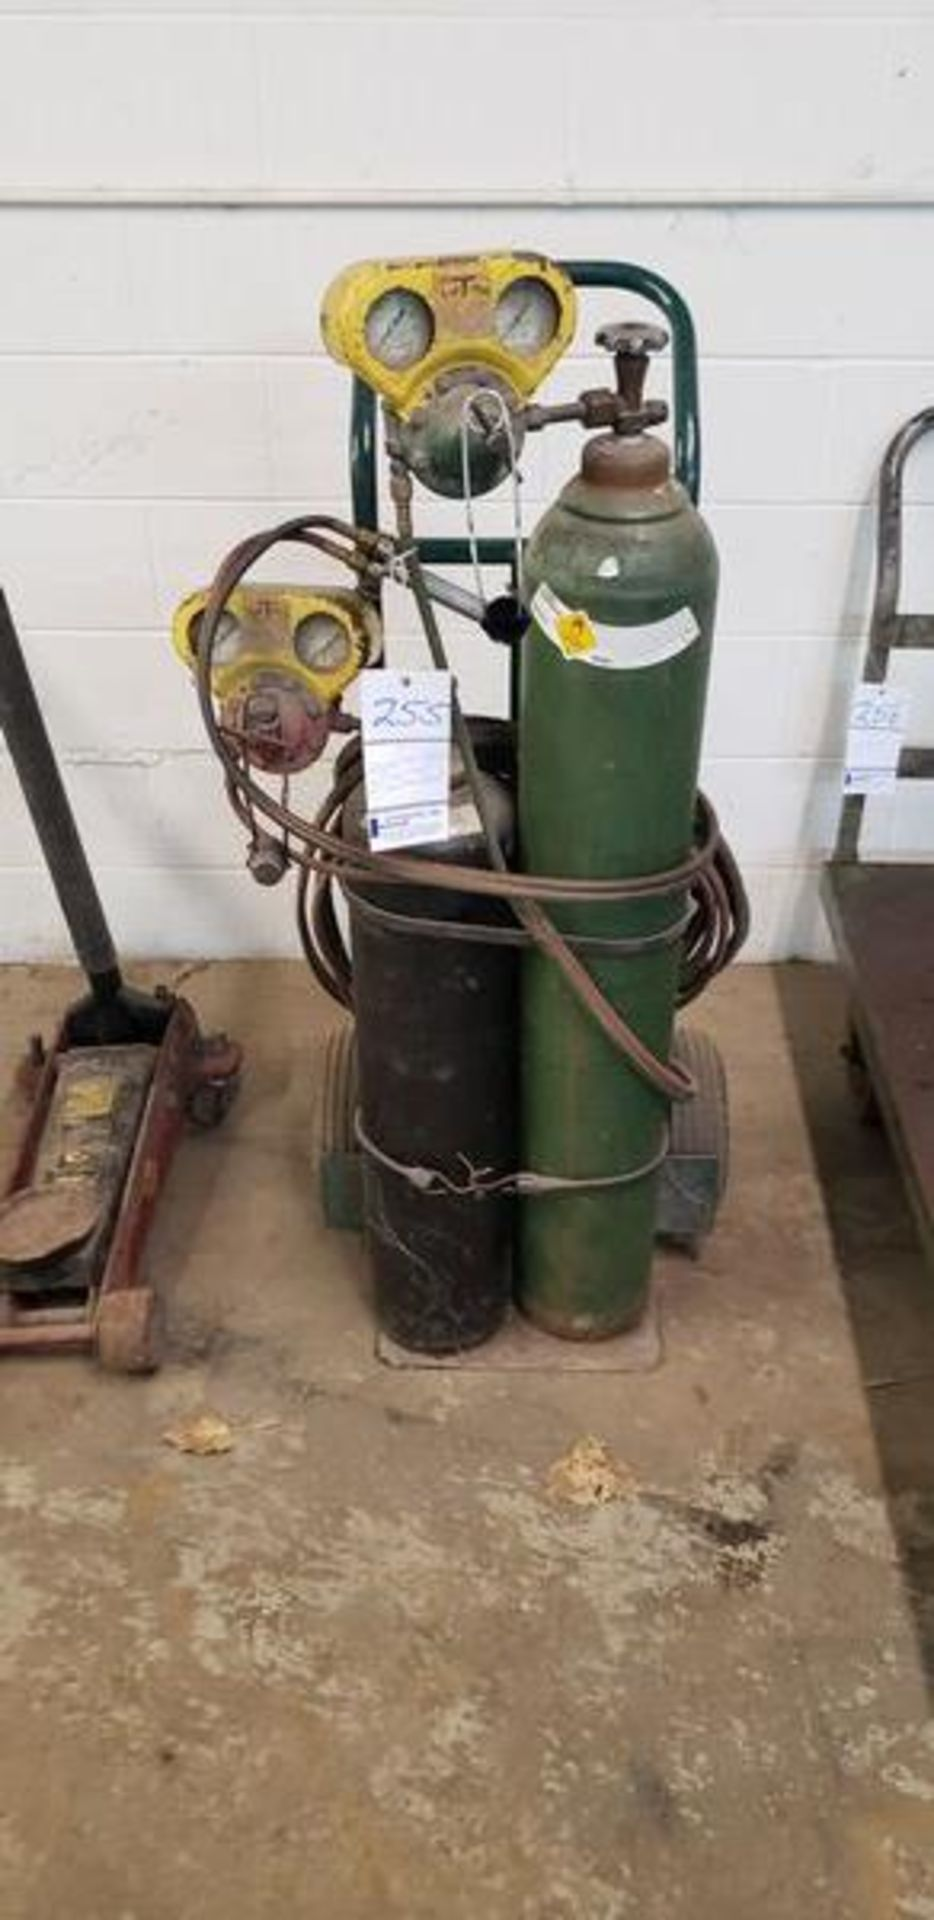 WELDING TORCH SET - WE DO NOT KNOW IF THESE TANKS CAN BE REFILLED